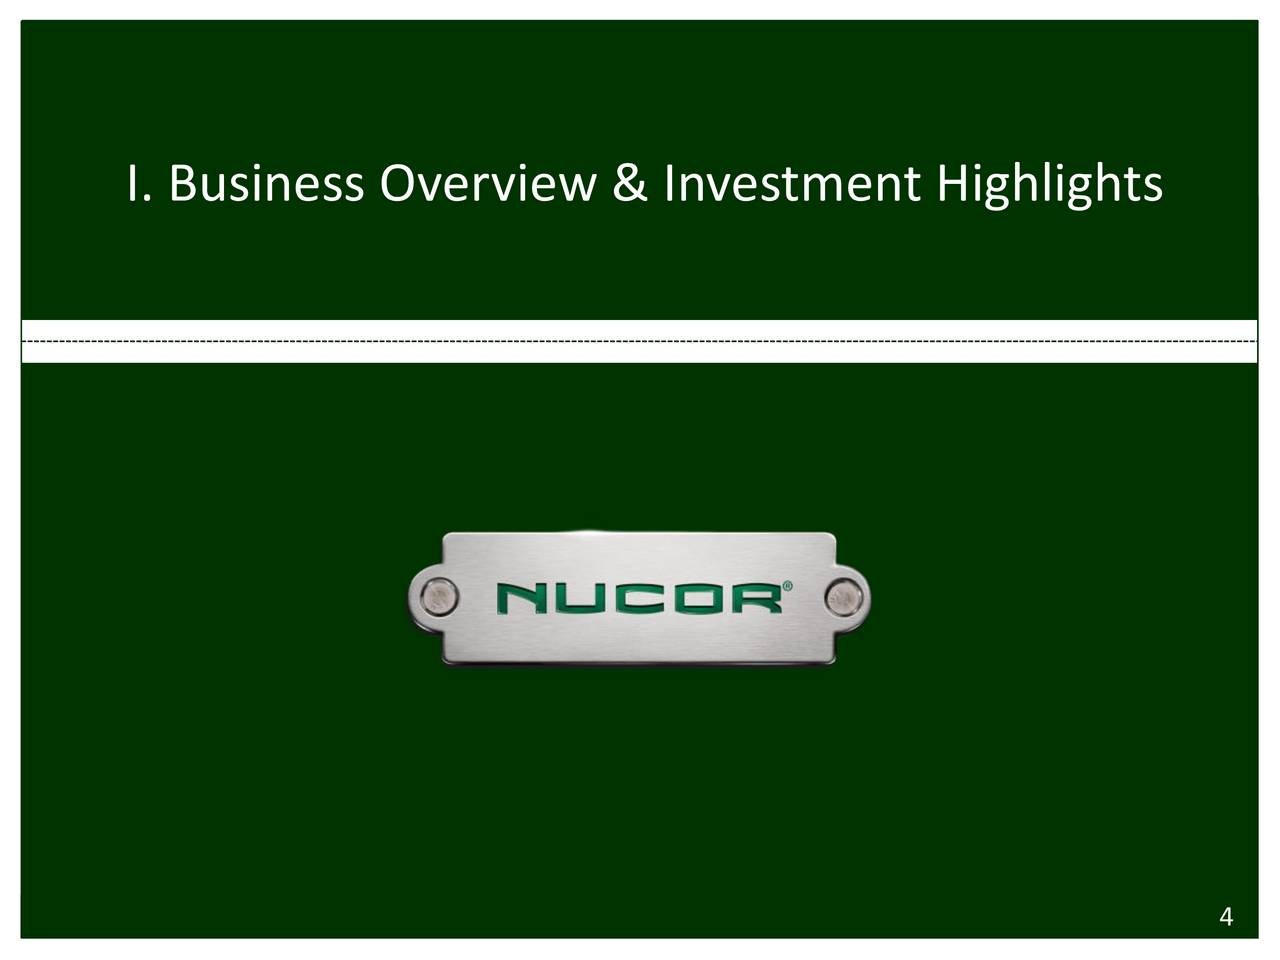 nucor corporation Nucor corp stock - nue news, historical stock charts, analyst ratings, financials, and today's nucor corp stock price.